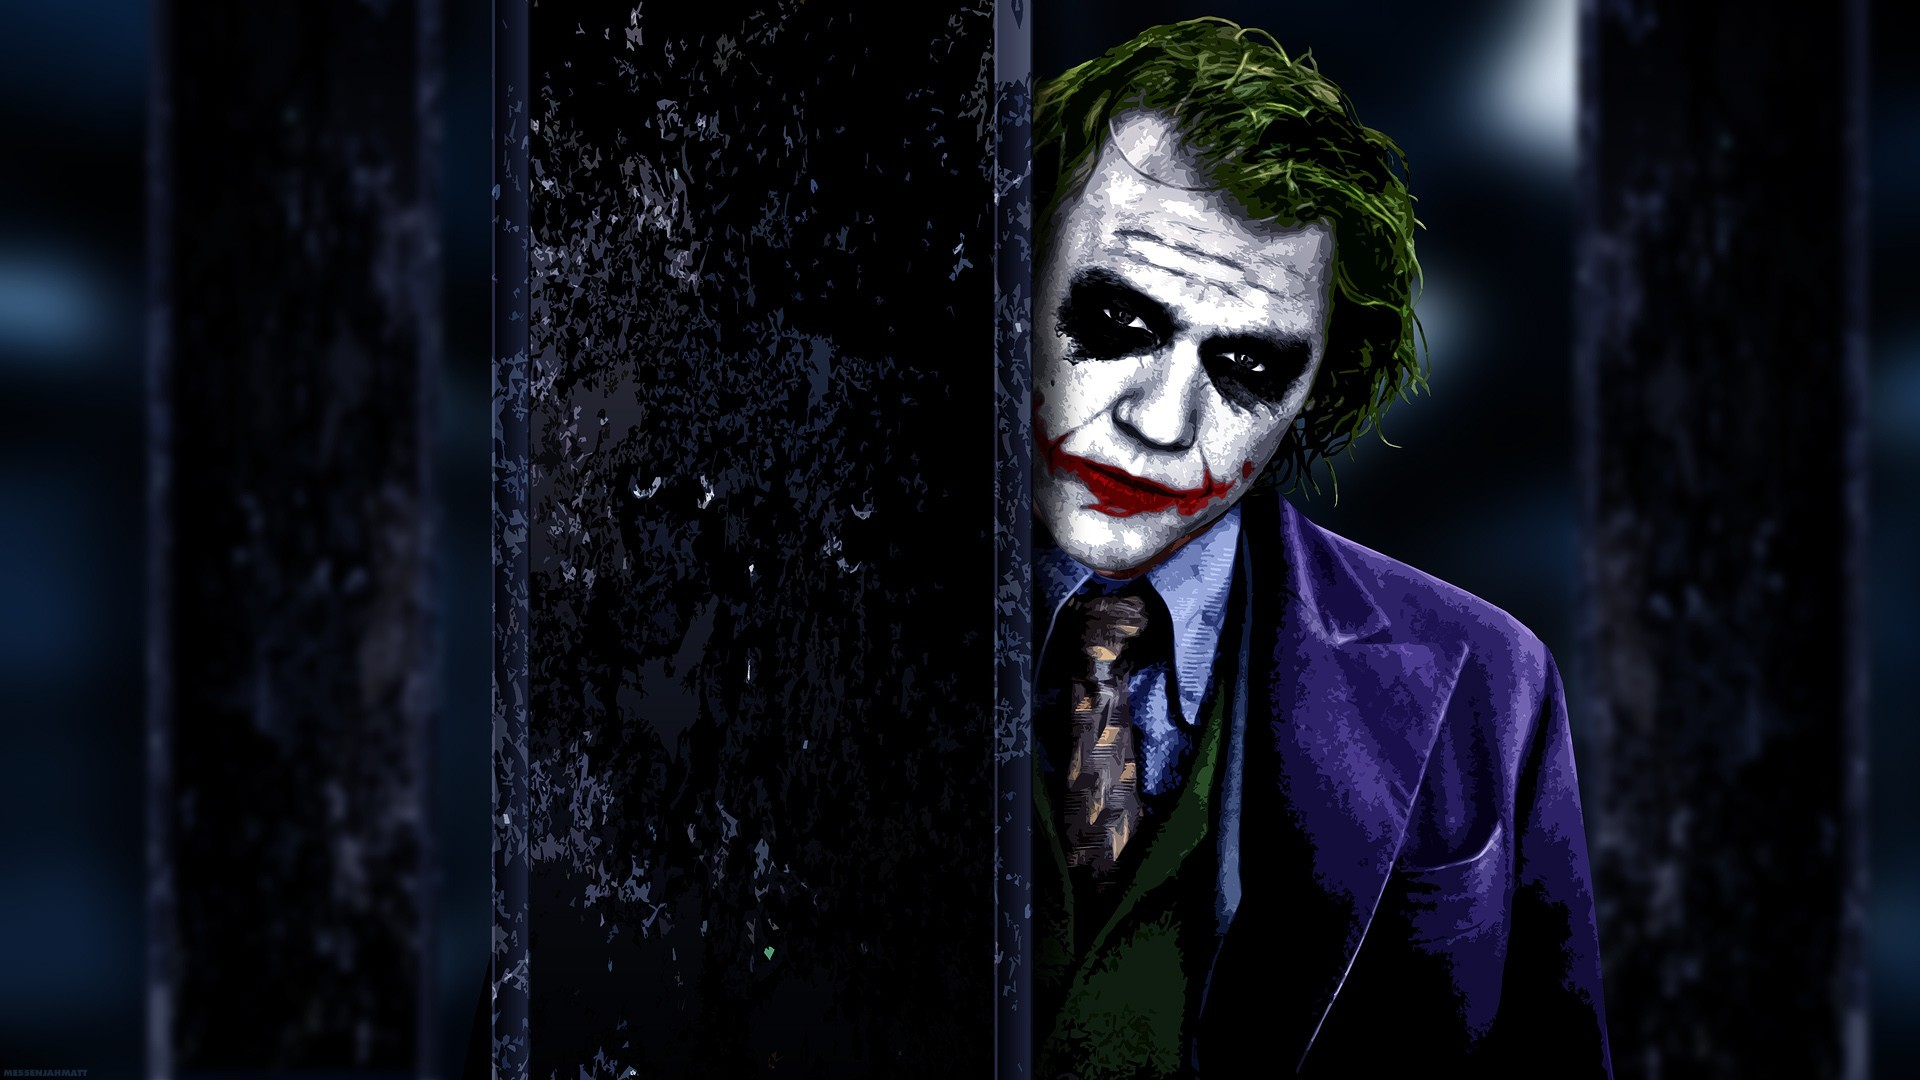 The Dark Knight - Joker - Top 10 HD Batman Movie Desktop Wallpapers